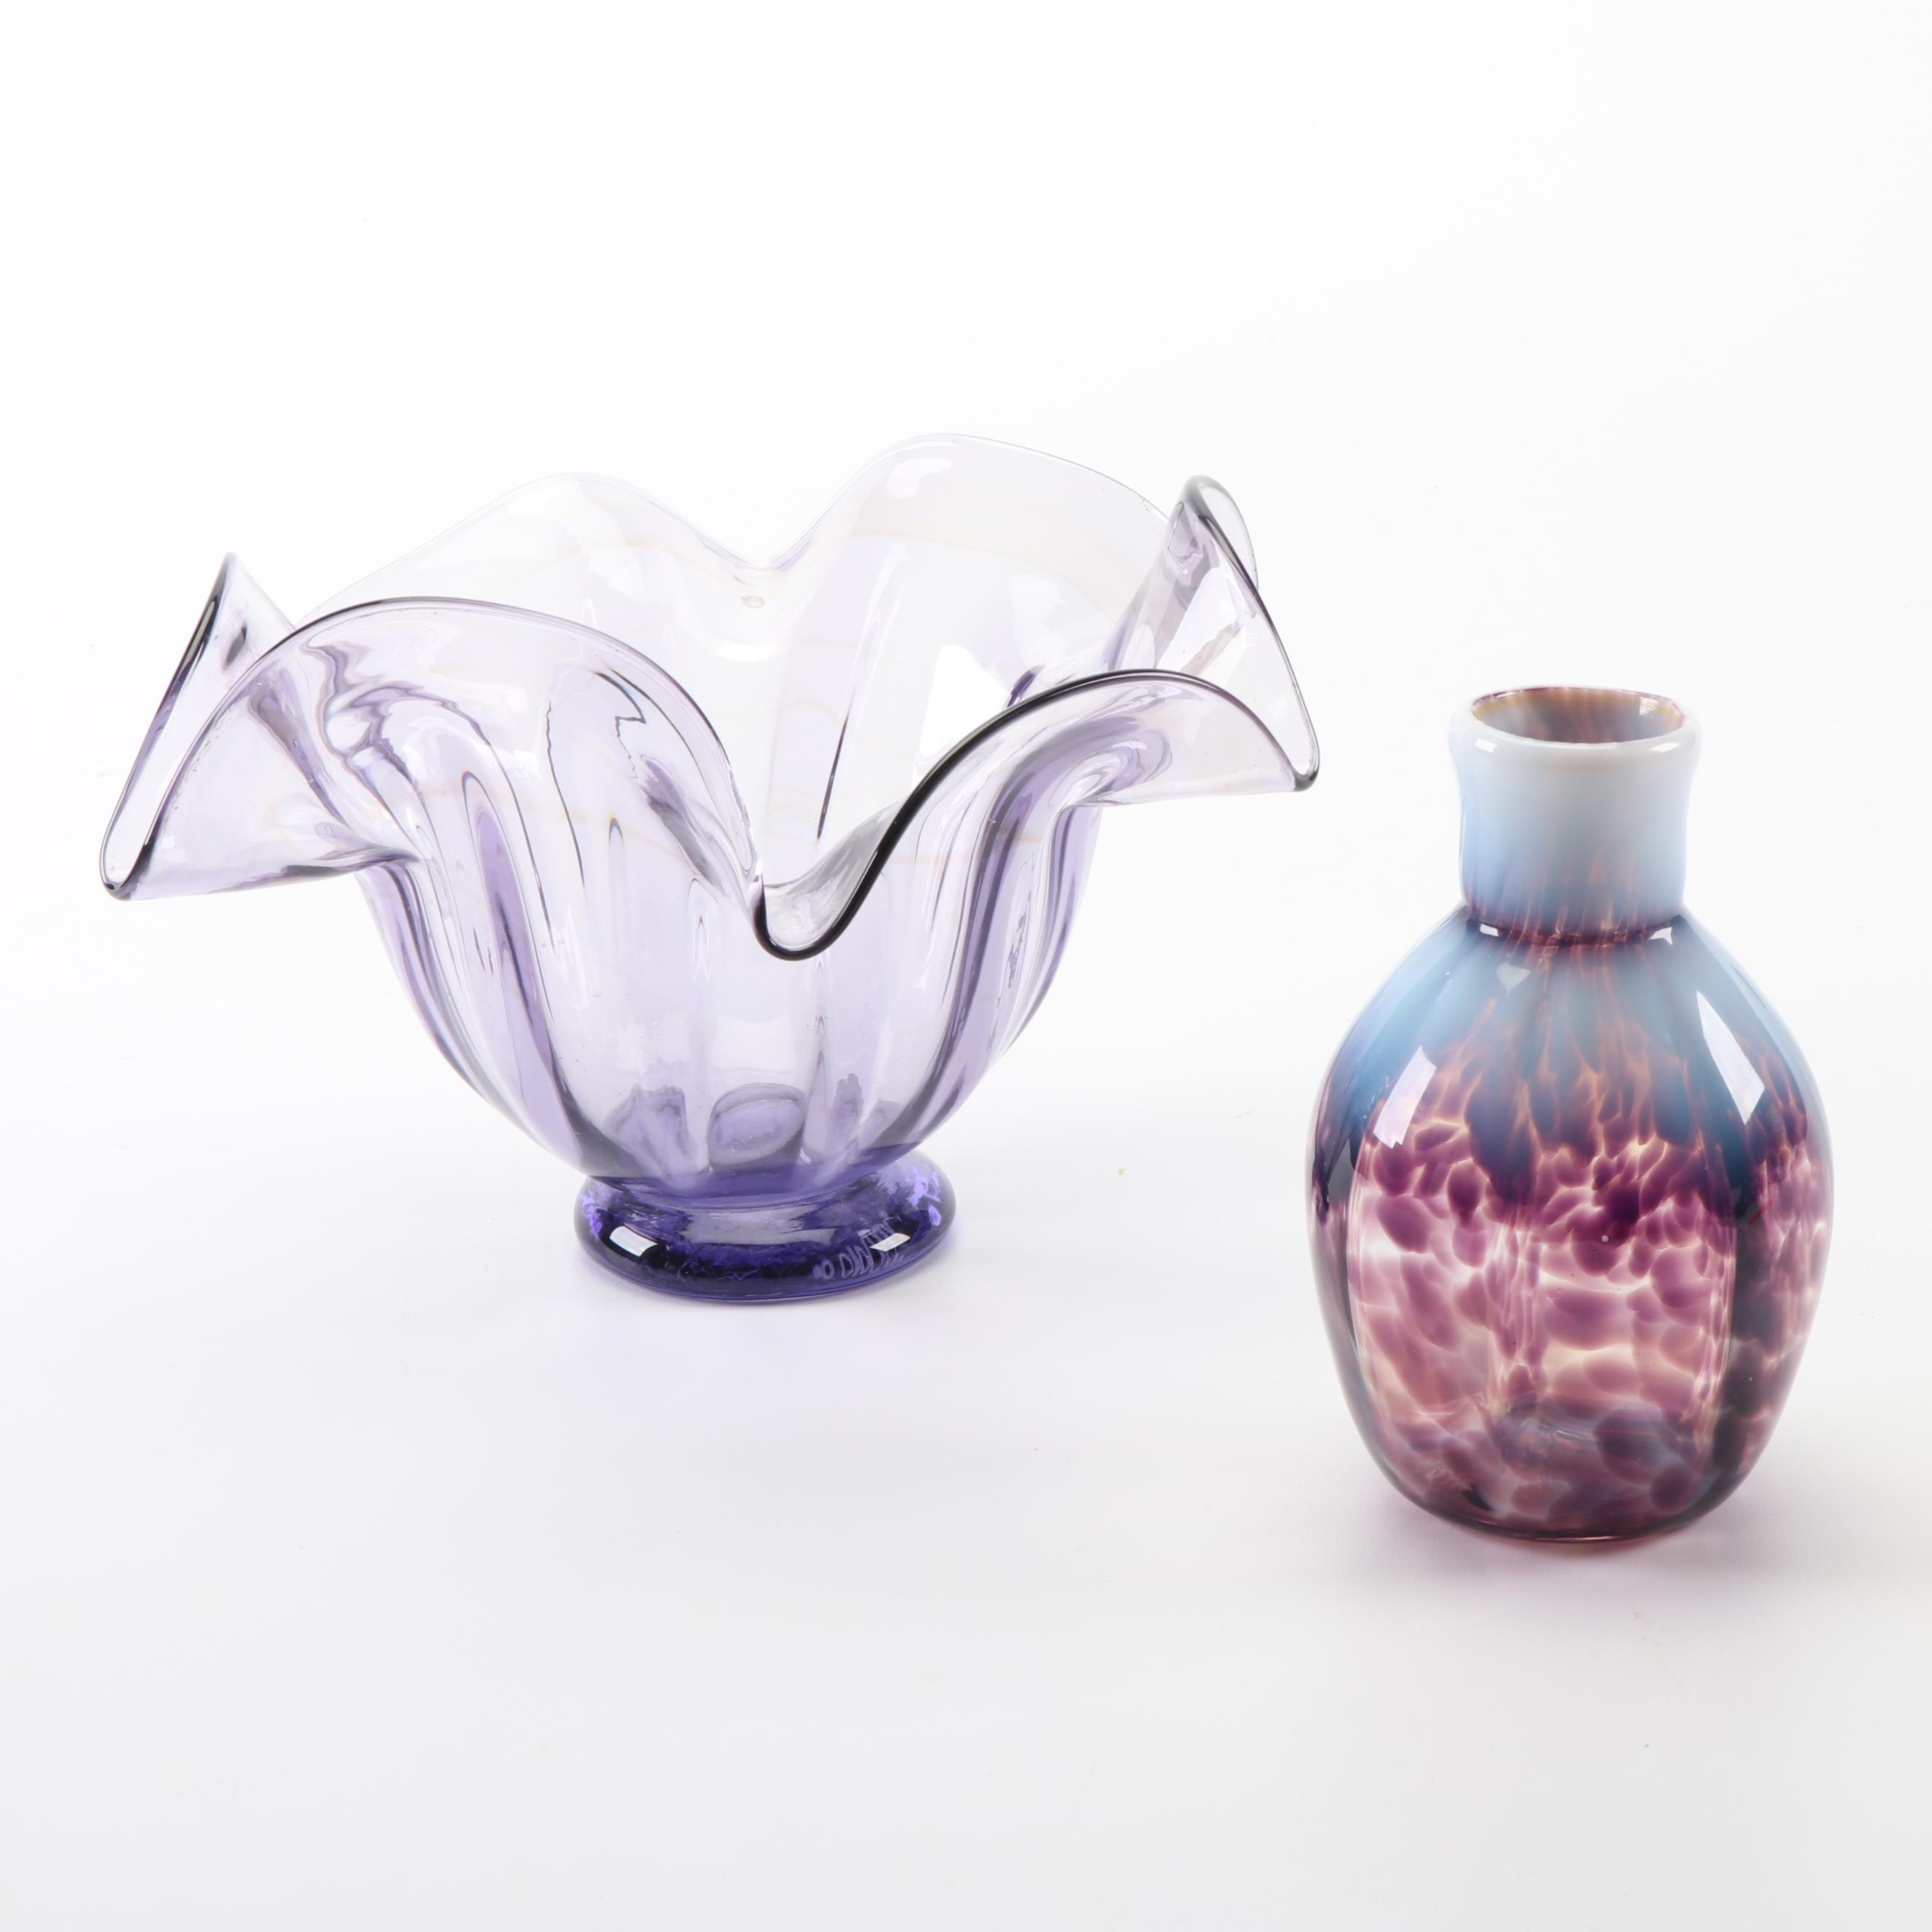 A. Carman Signed Hand Blown Glass Vases